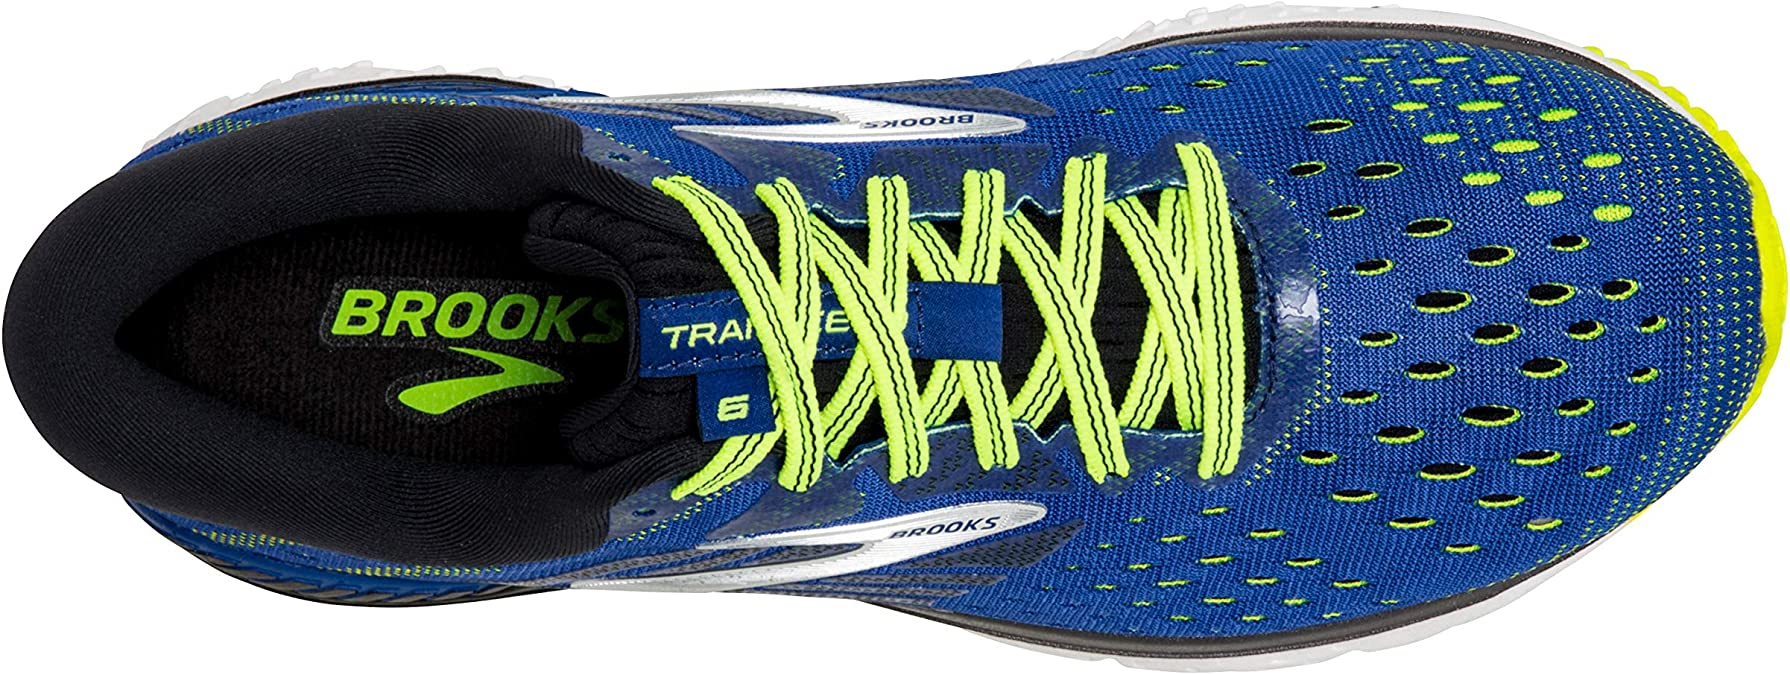 Brooks Transcend 6, Zapatillas de Running para Hombre: Amazon.es ...